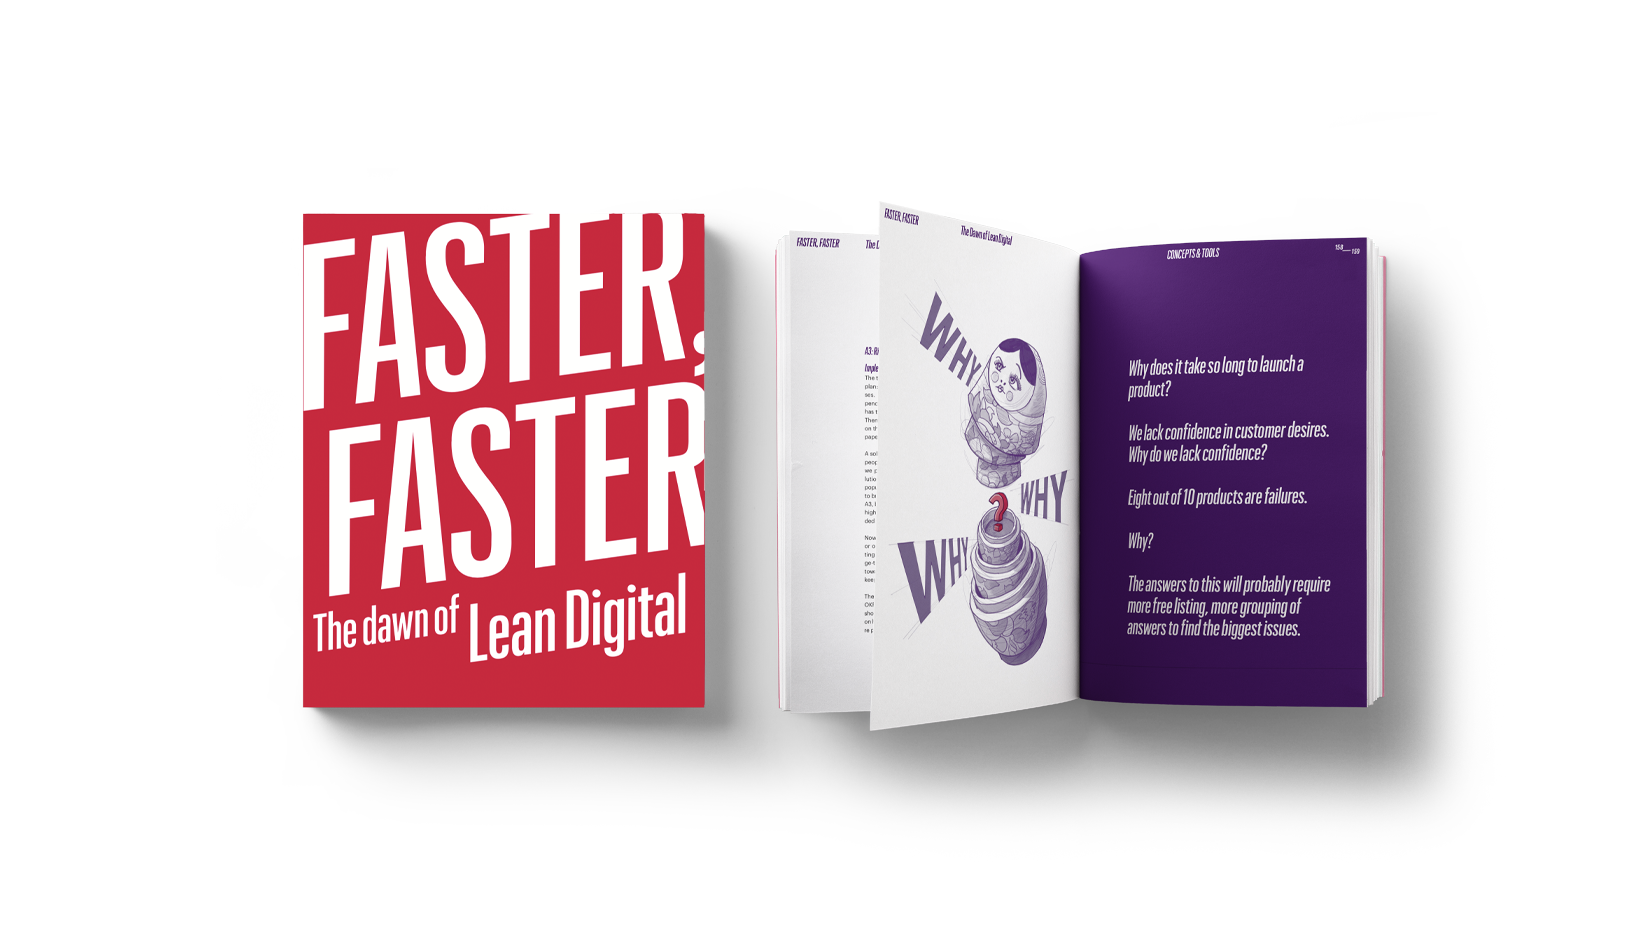 A mockup of the Faster Faster book open